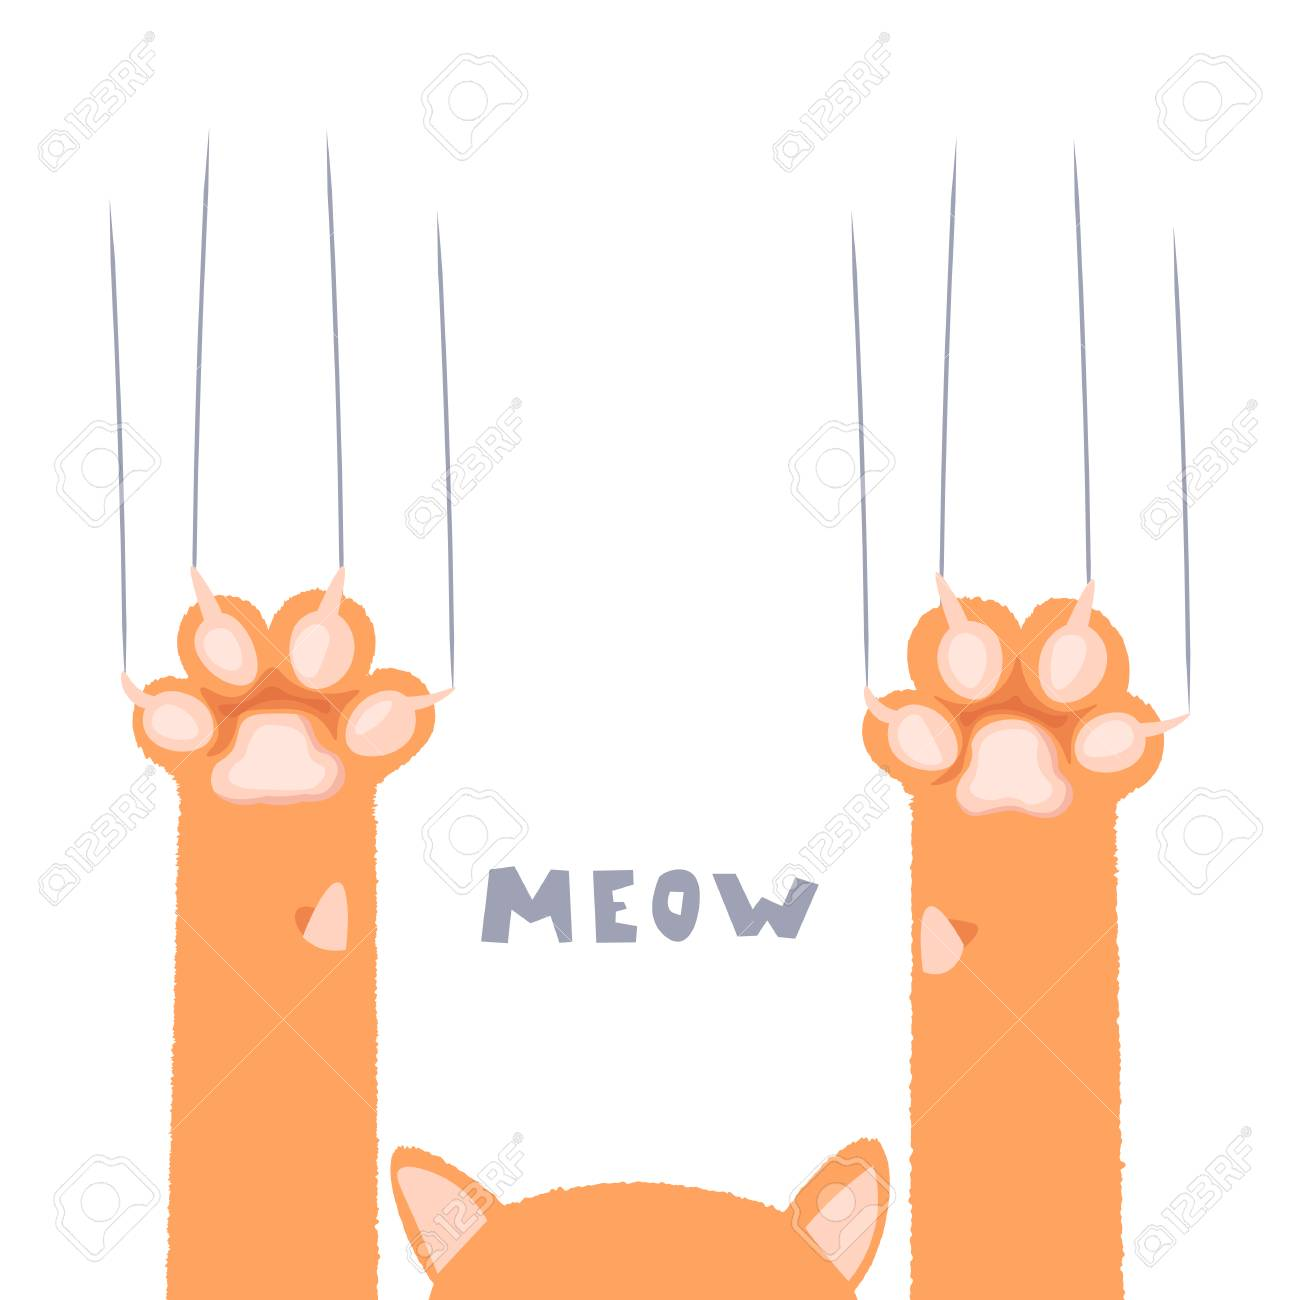 Cat Paws Wallpaper Legs Dog Paw Cat Background Kitten Flat Royalty Free Cliparts Vectors And Stock Illustration Image 126180278